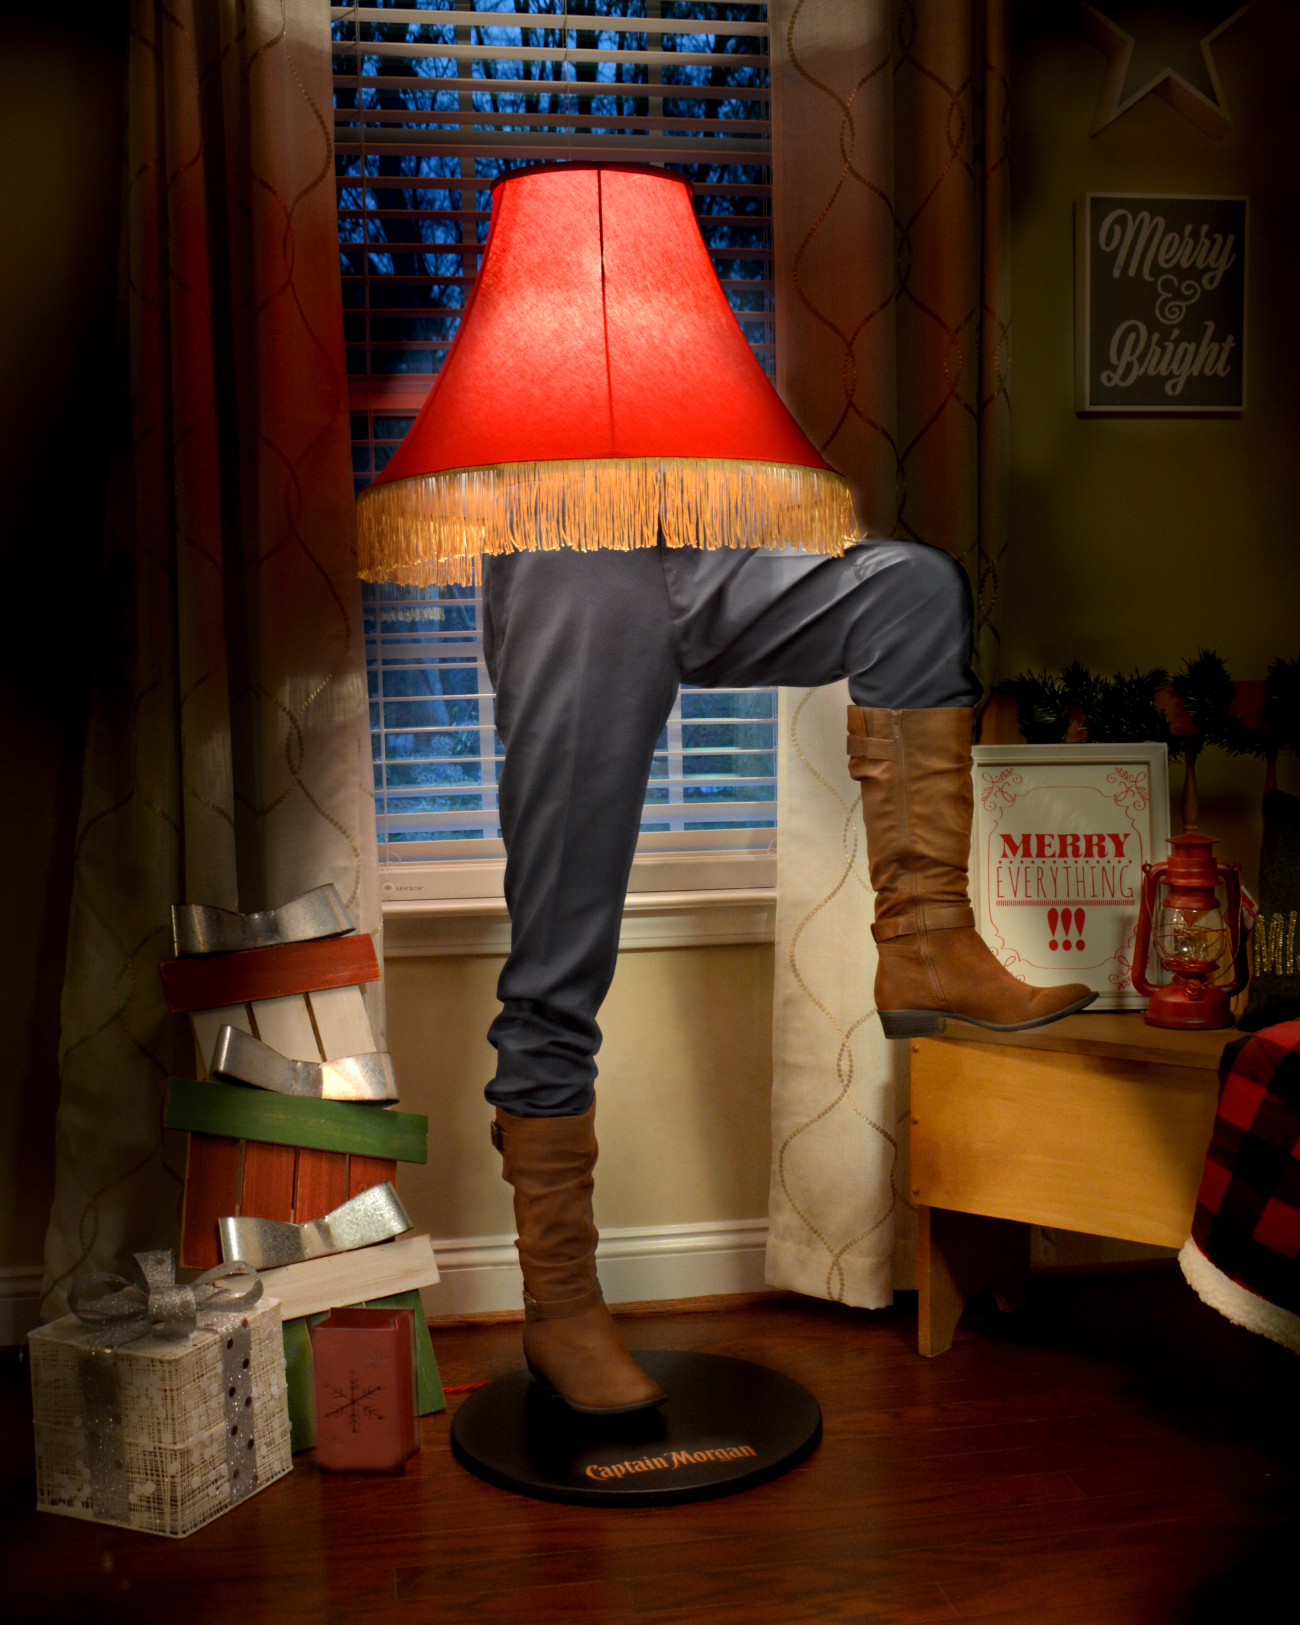 Leg Lamps From A Christmas Story.Captain Morgan Is Selling A Few Large Christmas Story Leg